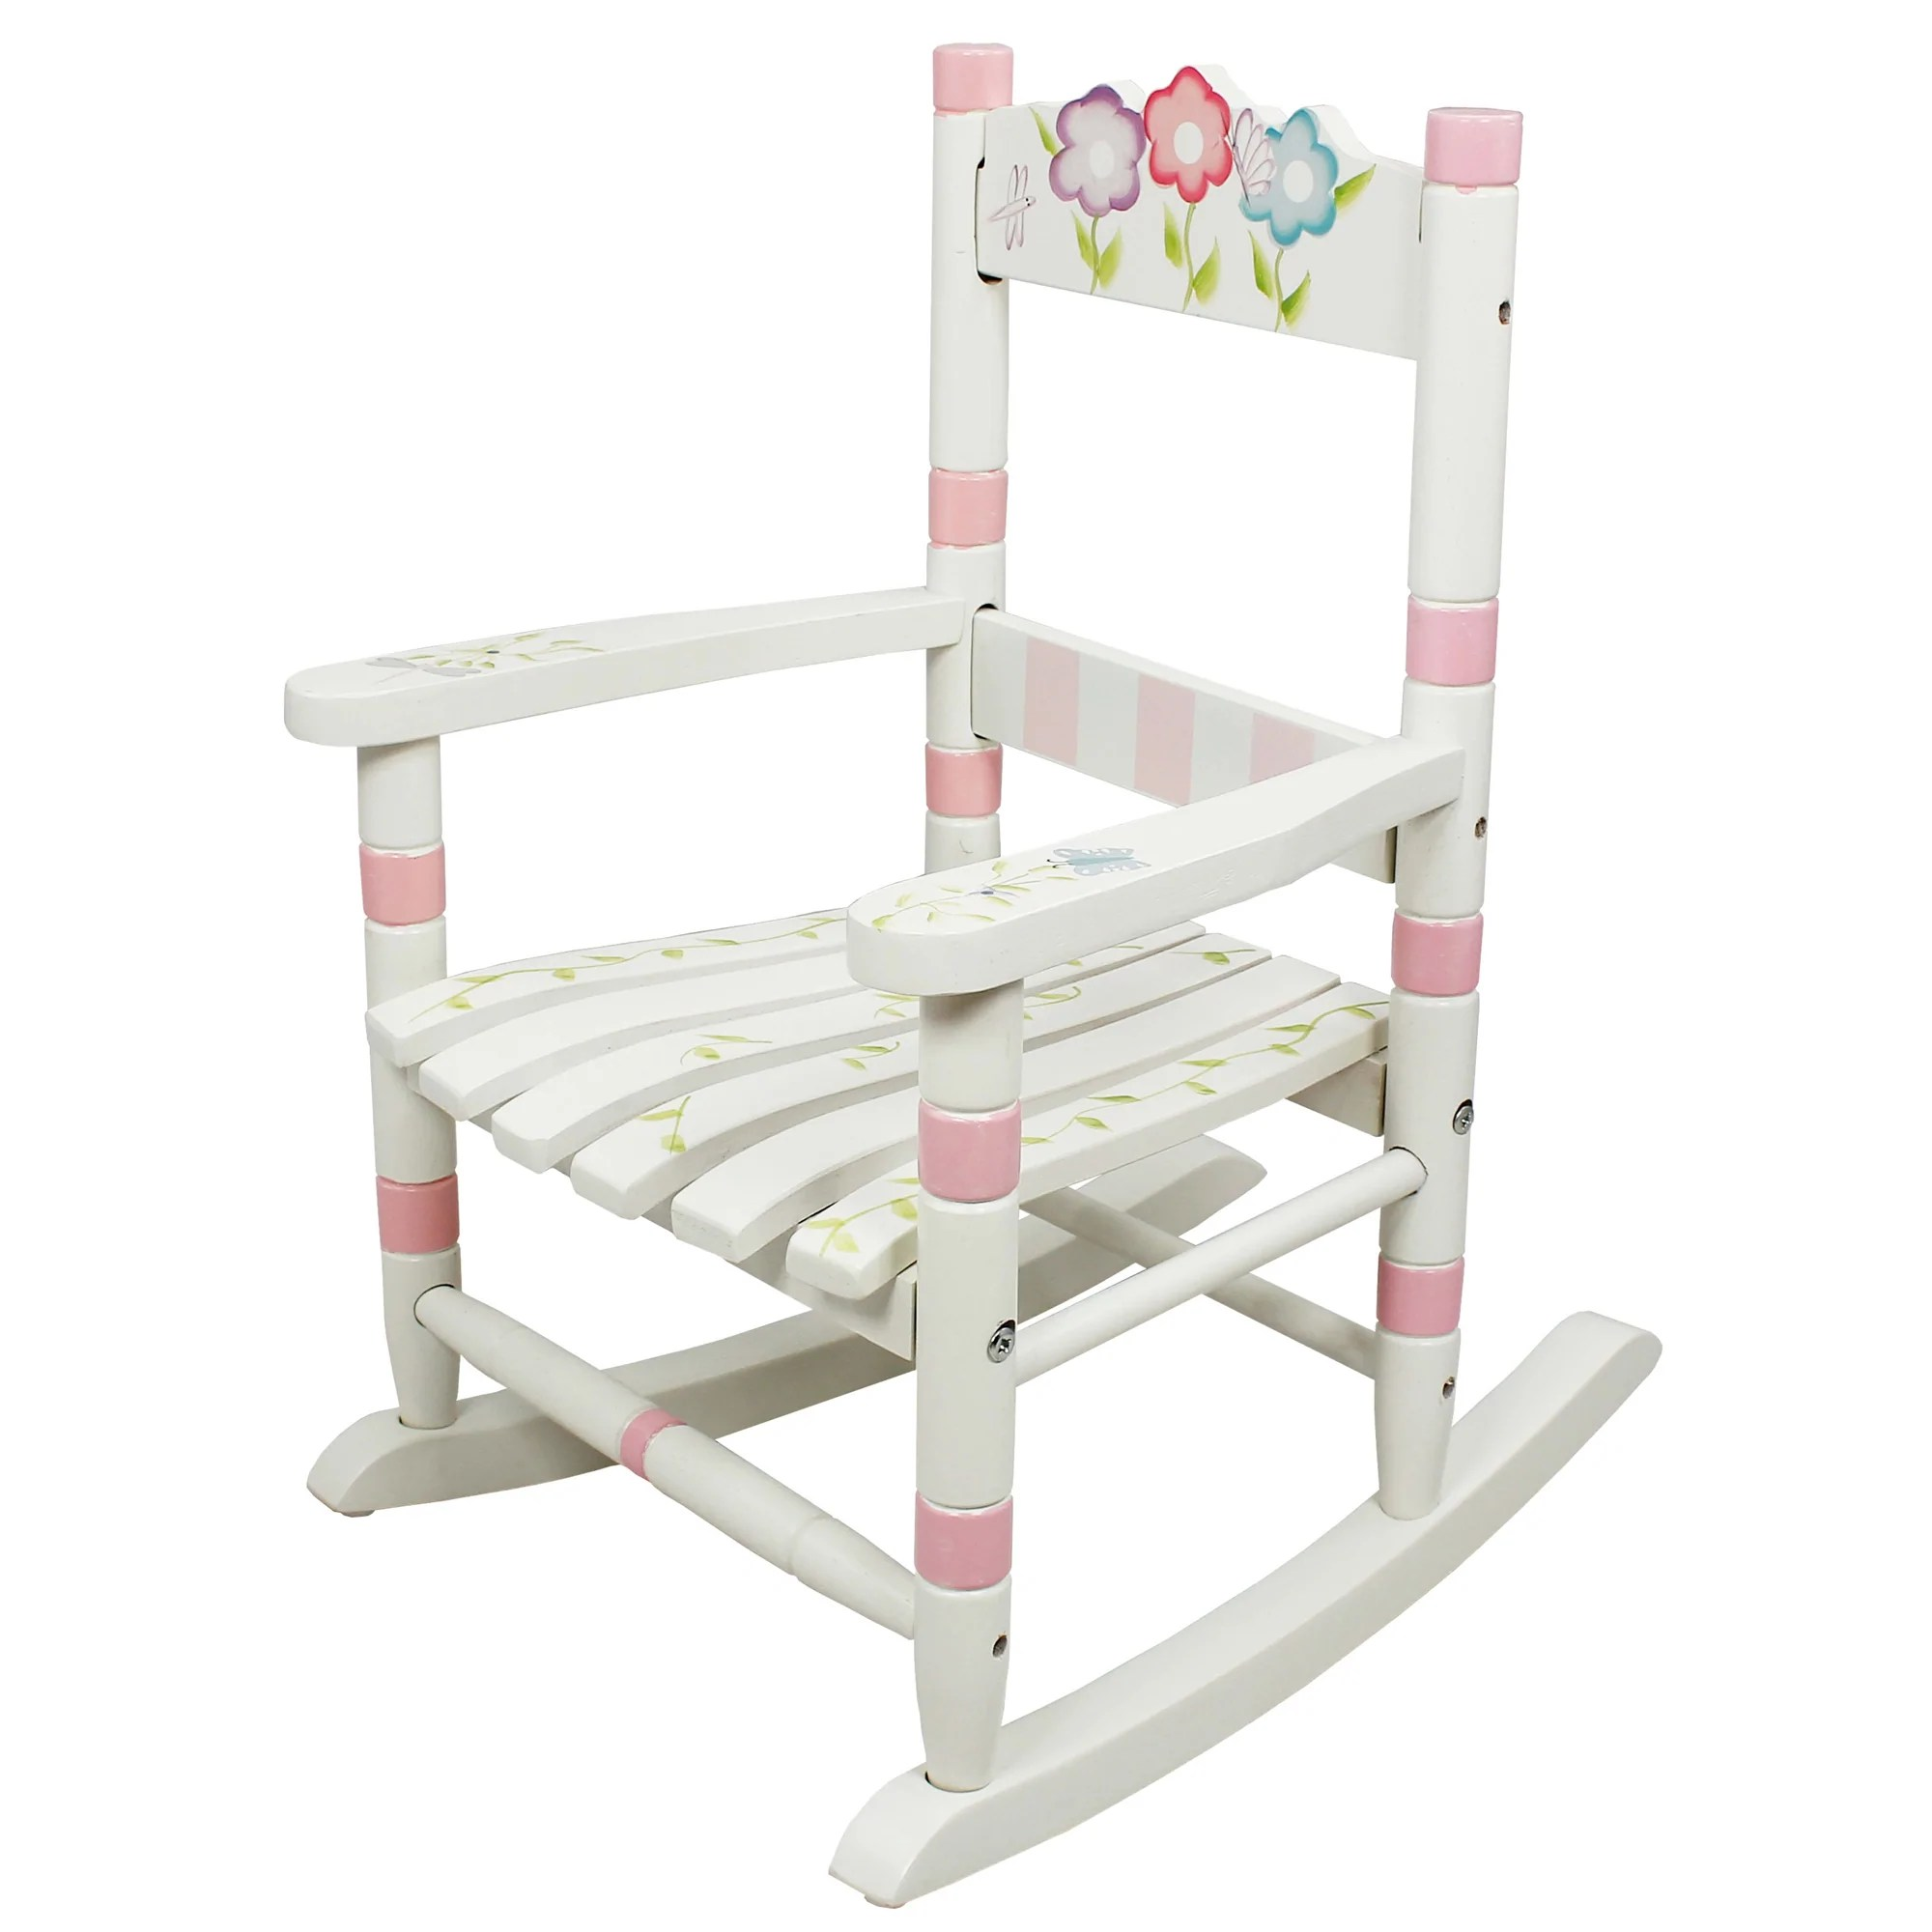 Child Wooden Rocking Chair Details About Sold Out Fantasy Fields Childrens Bouquet Kids Wooden Rocking Chair Nursery Room